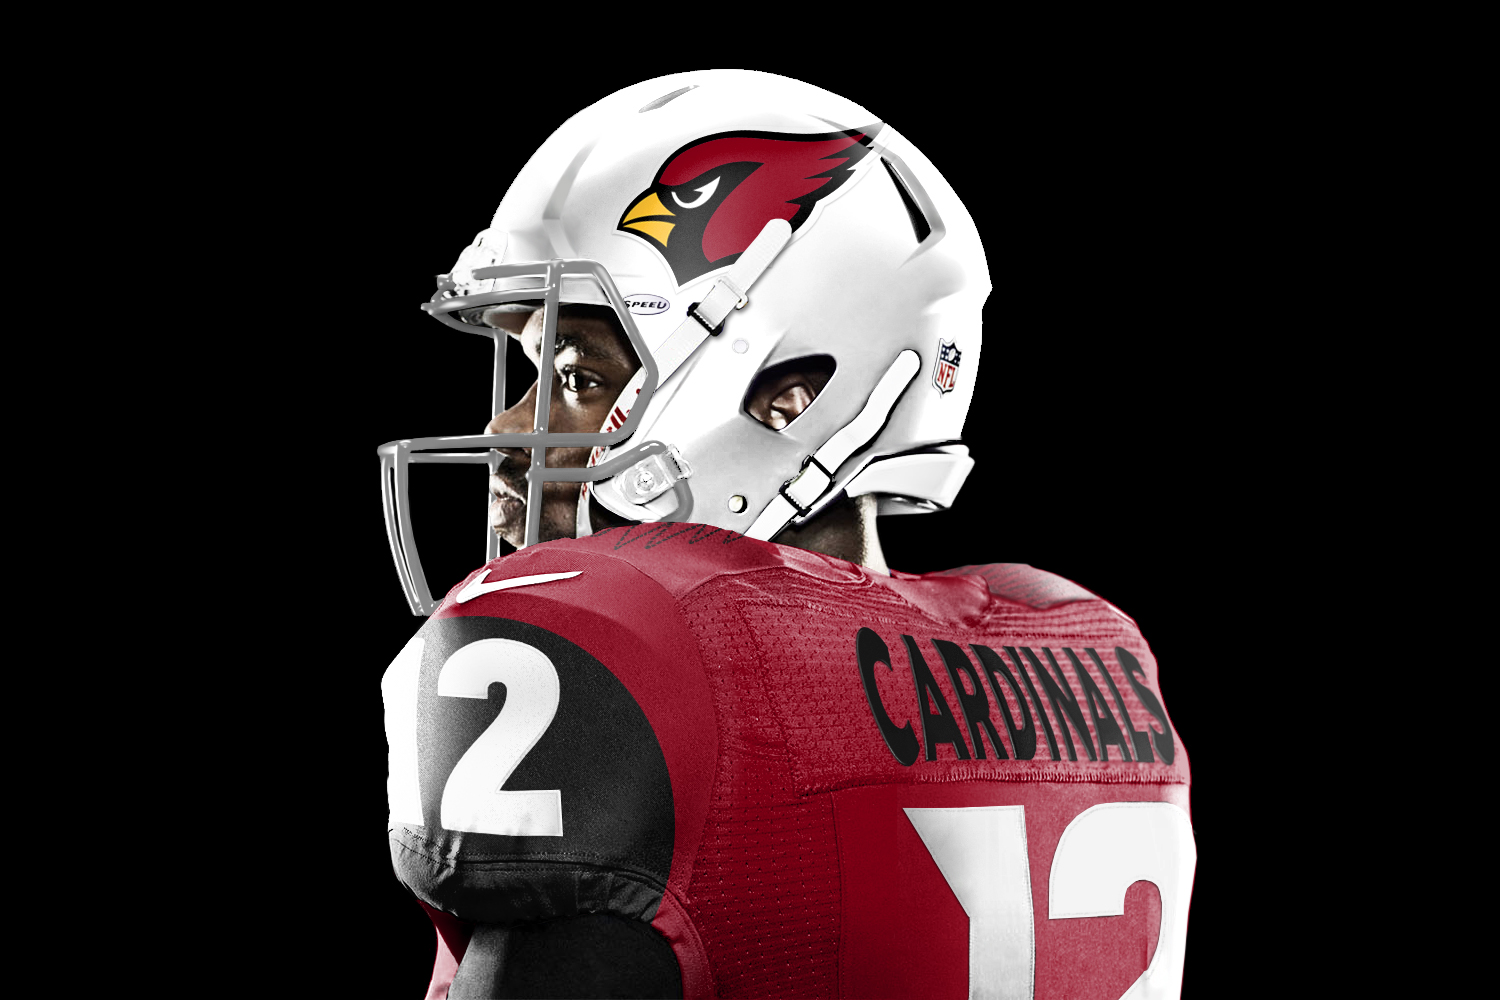 Arizona Cardinals 93 Calais Campbell Red Player Stitched NFL Hooded Sweatshirt